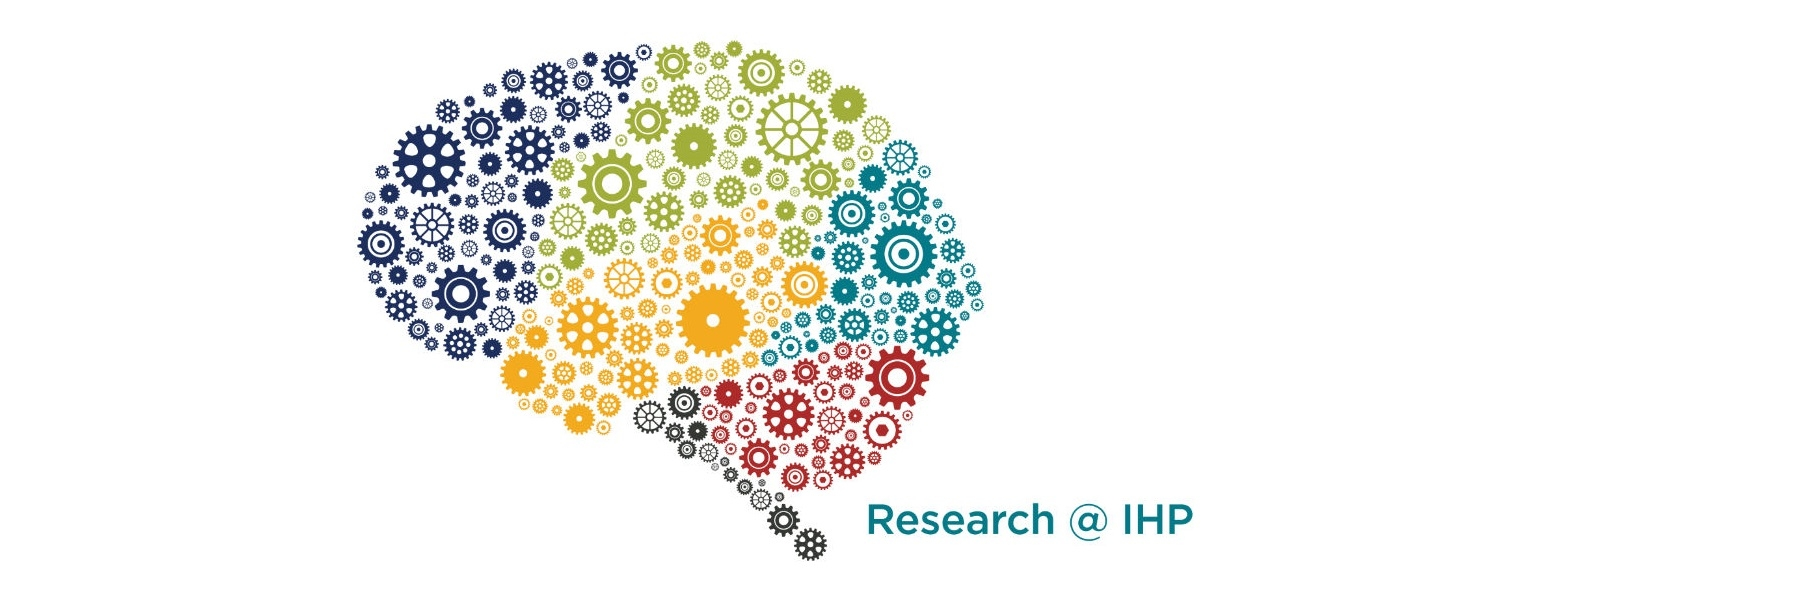 Research at the IHP